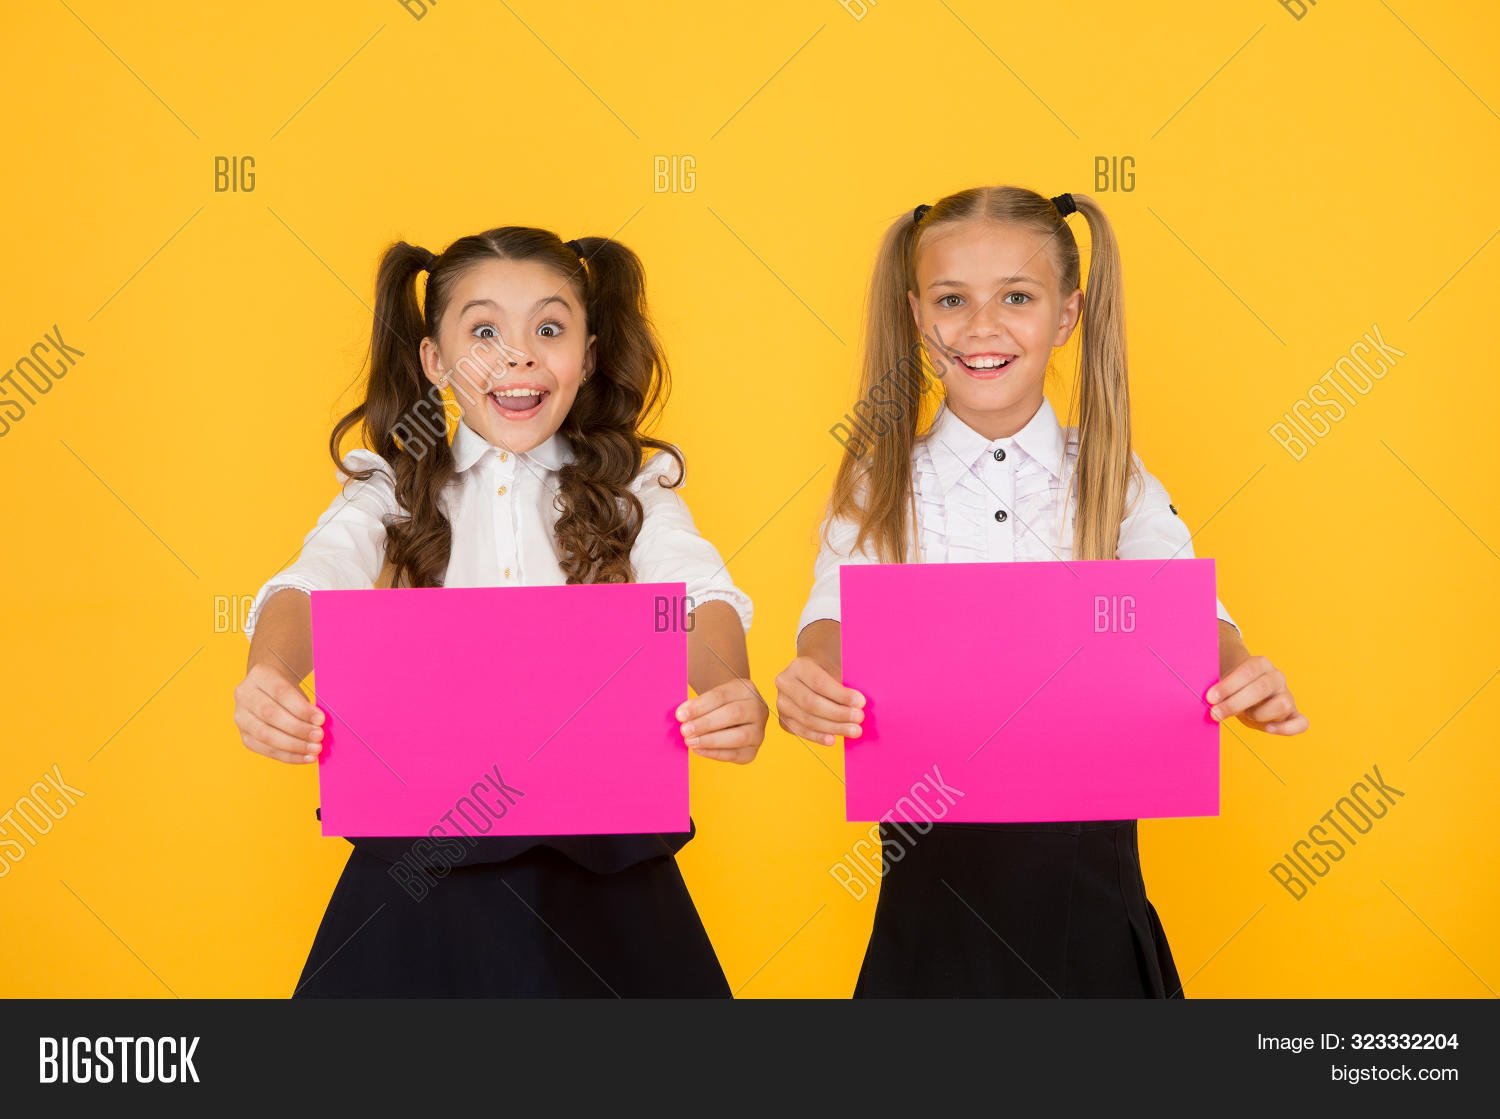 Promote with advertising. Happy small children showing pink paper sheets for advertising on yellow background. Little girl advertising product or event. Advertising and marketing, copy space.